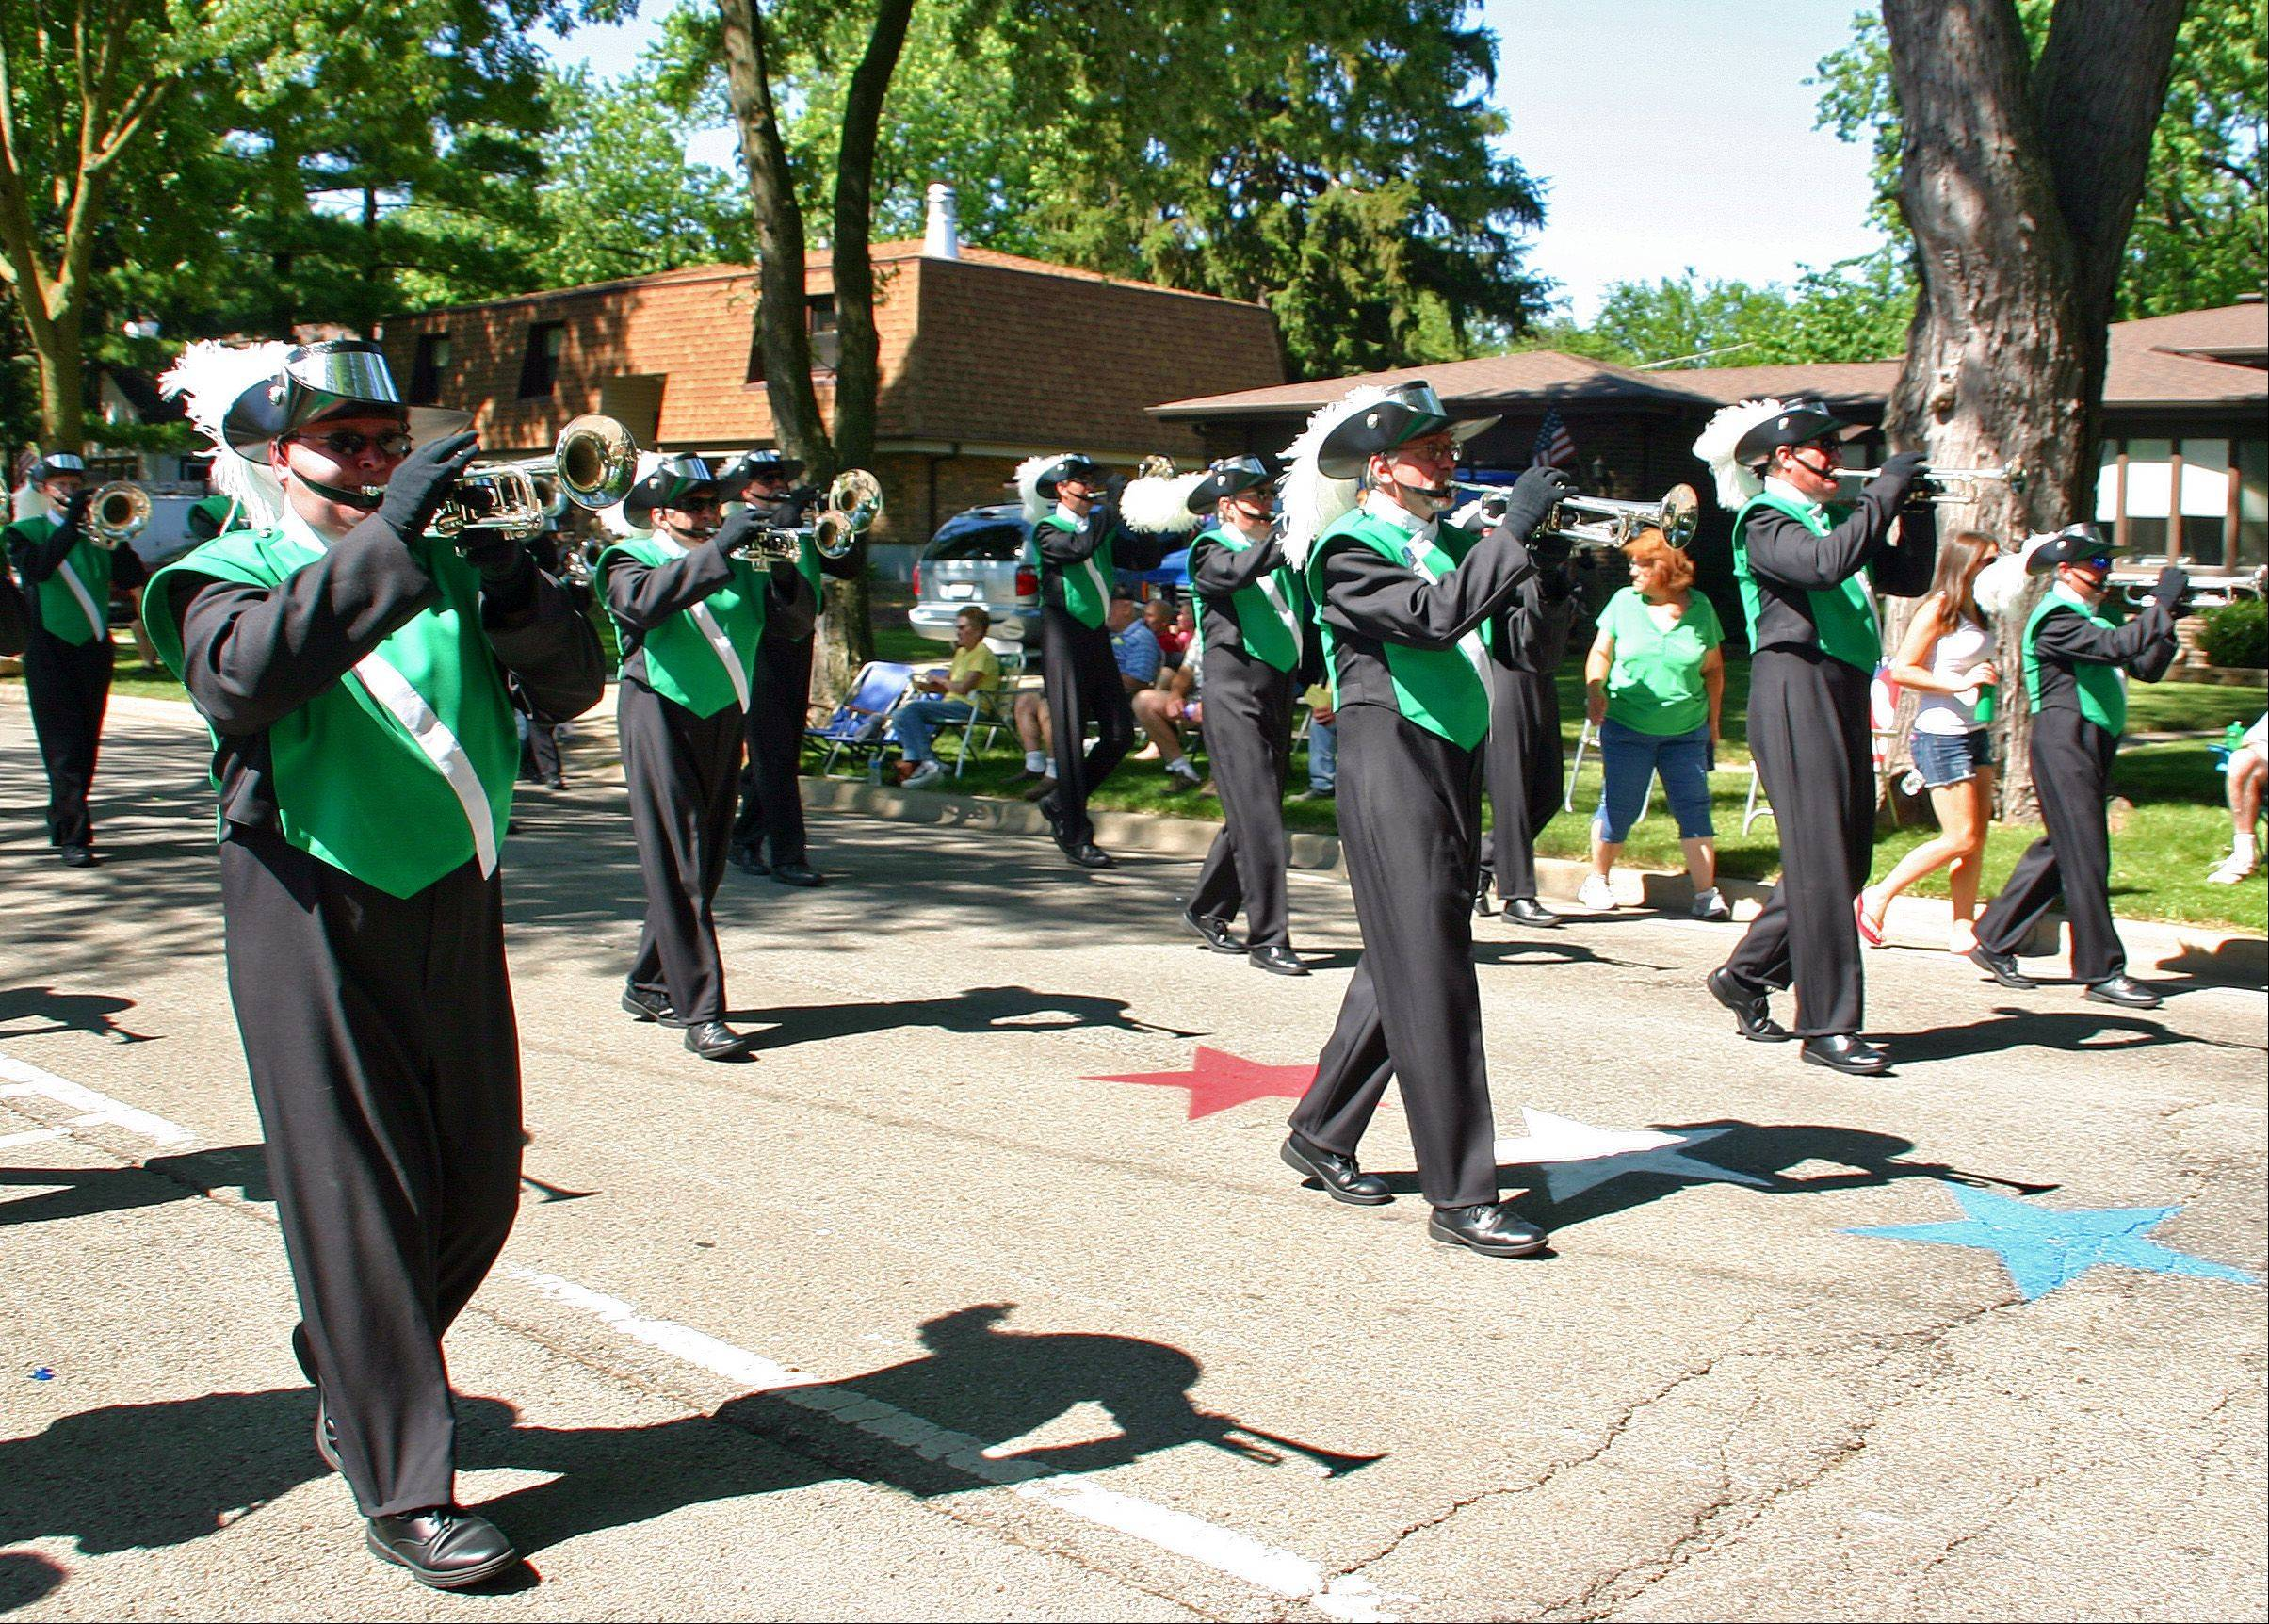 Classic Cavaliers march down Center Street playing patriotic tunes in the Des Plaines Fourth of July Parade.